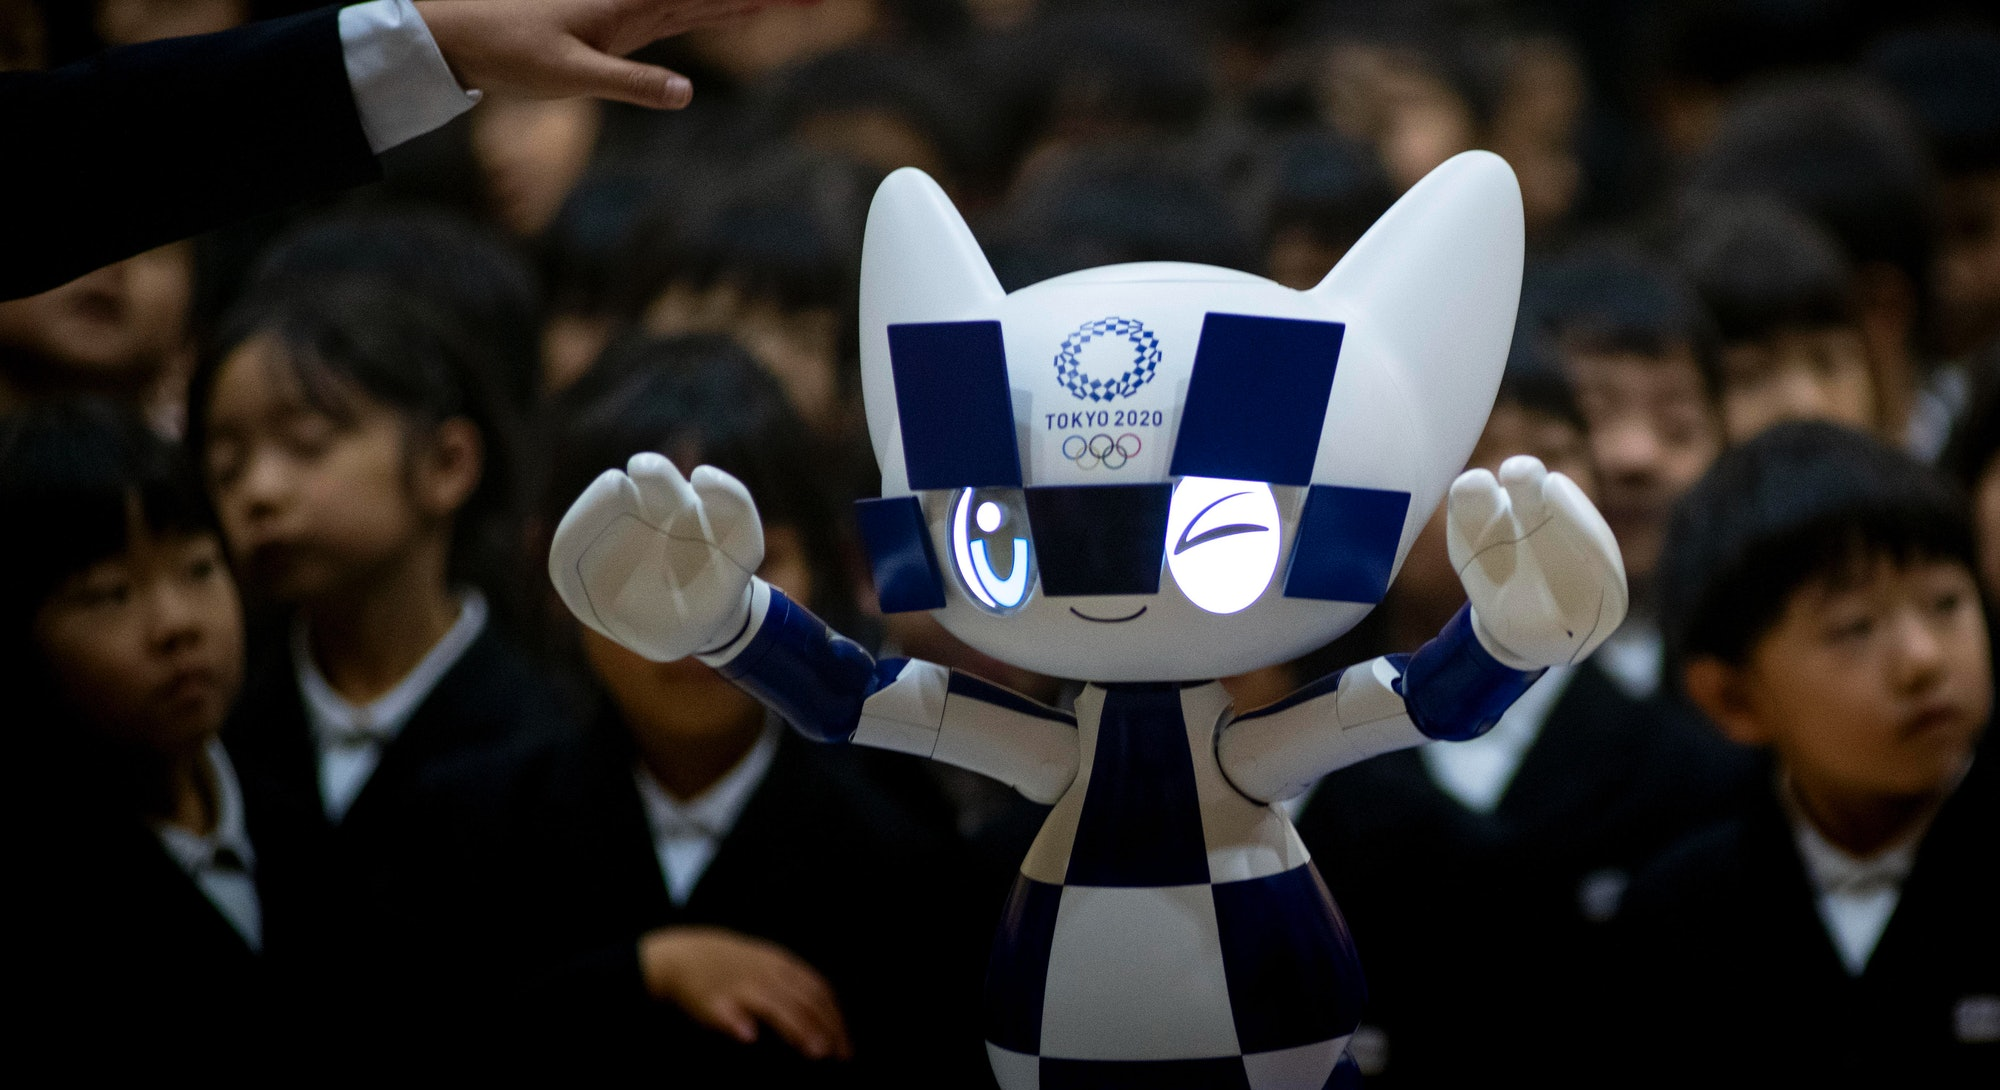 Schoolchildren pose for a picture with Tokyo 2020 Olympic Games' robot-type mascot Miraitowa during ...